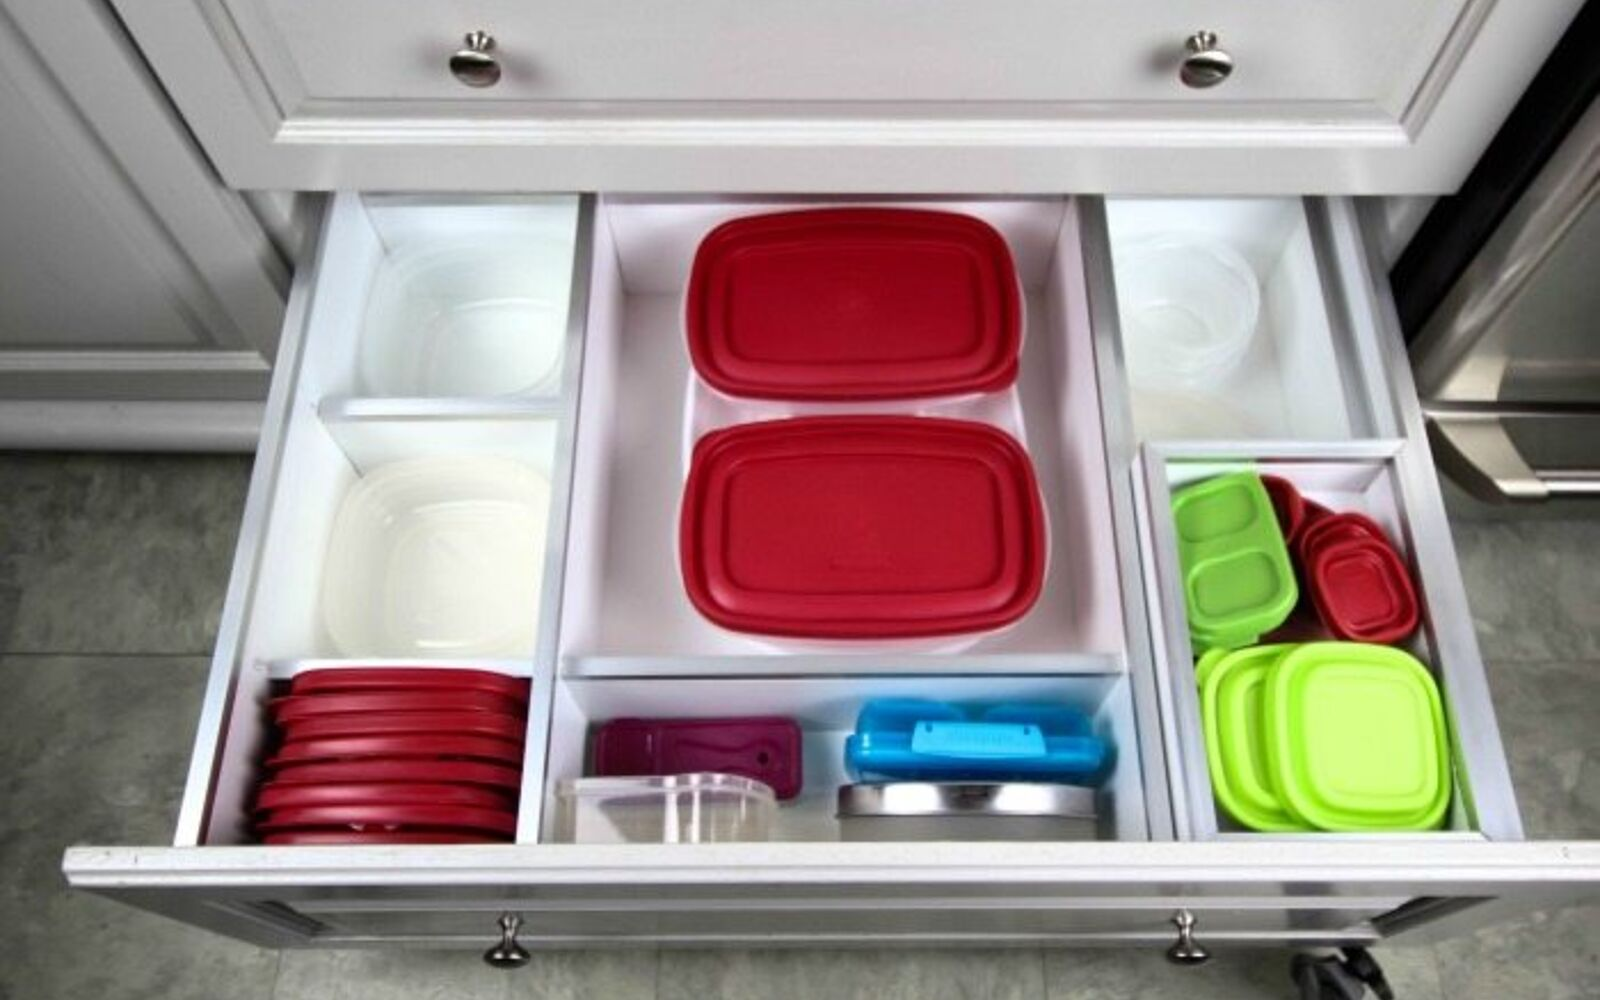 s 31 storage hacks that will instantly declutter your kitchen, Turn your drawers into organizers